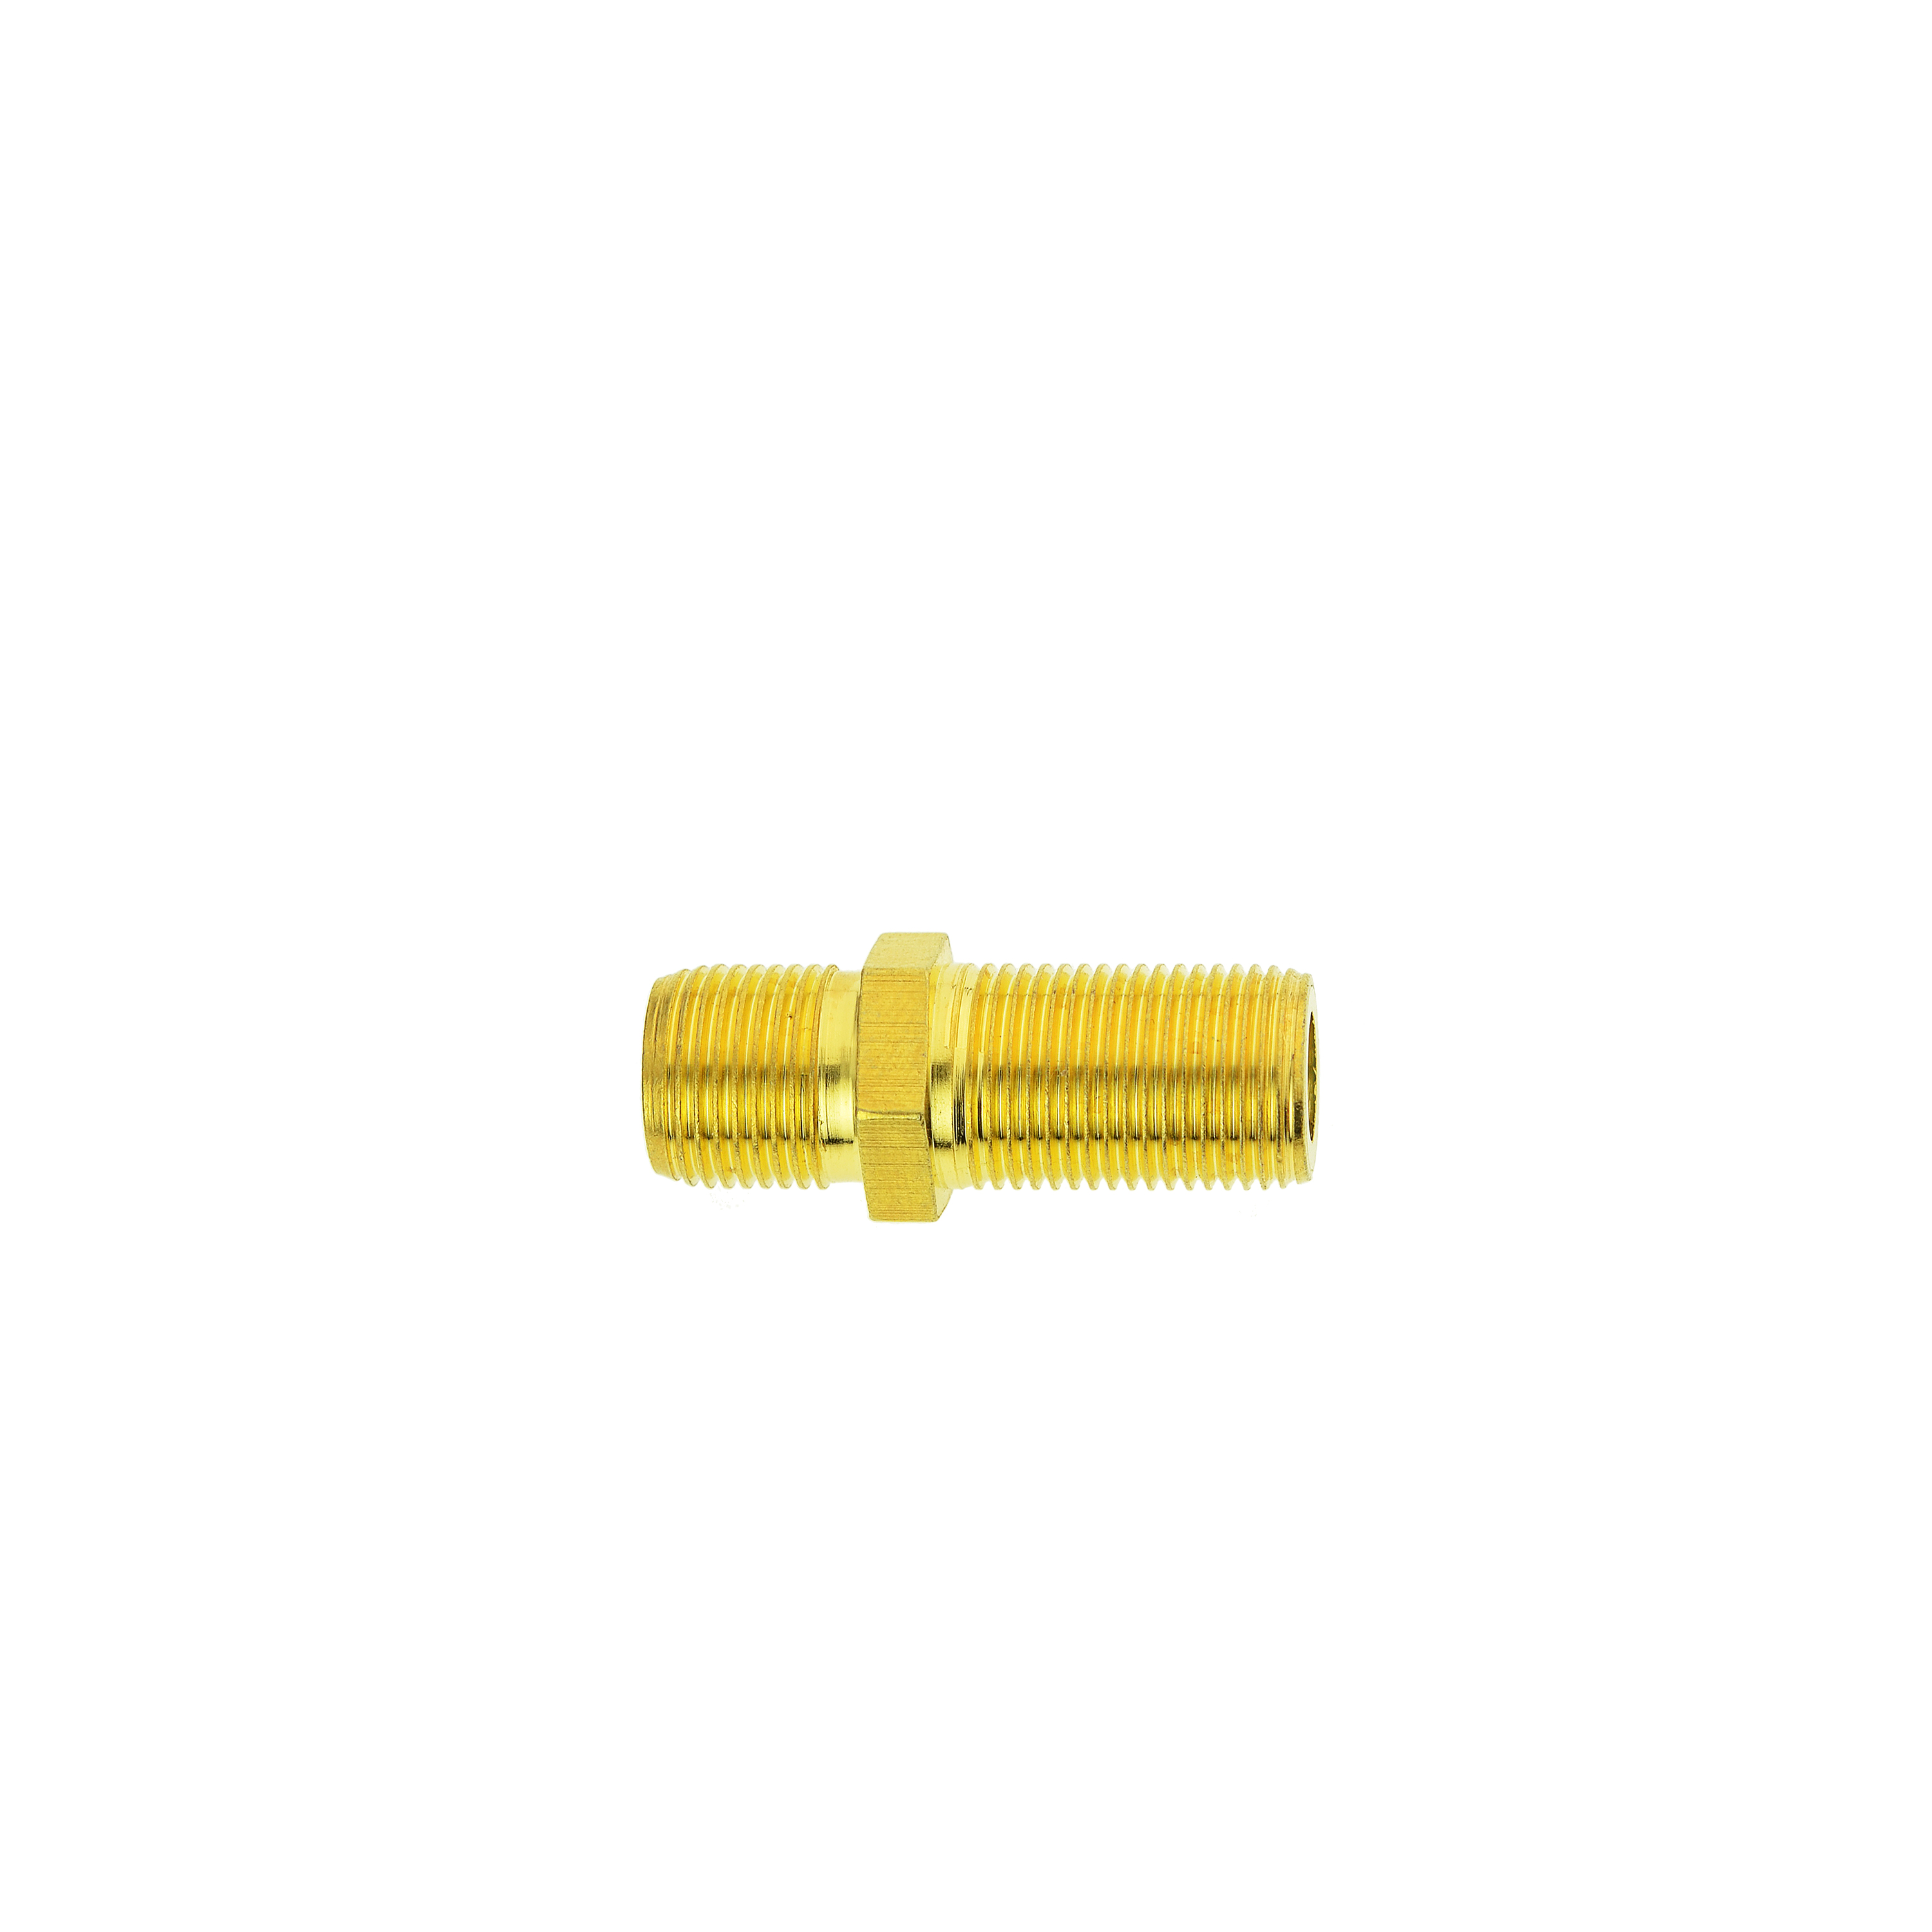 Part# CONN-F81-5PKX 3GHz Female to Female F-Type Coaxial Cable Extension 5 Pack - Mediabridge F81 Splice Connector